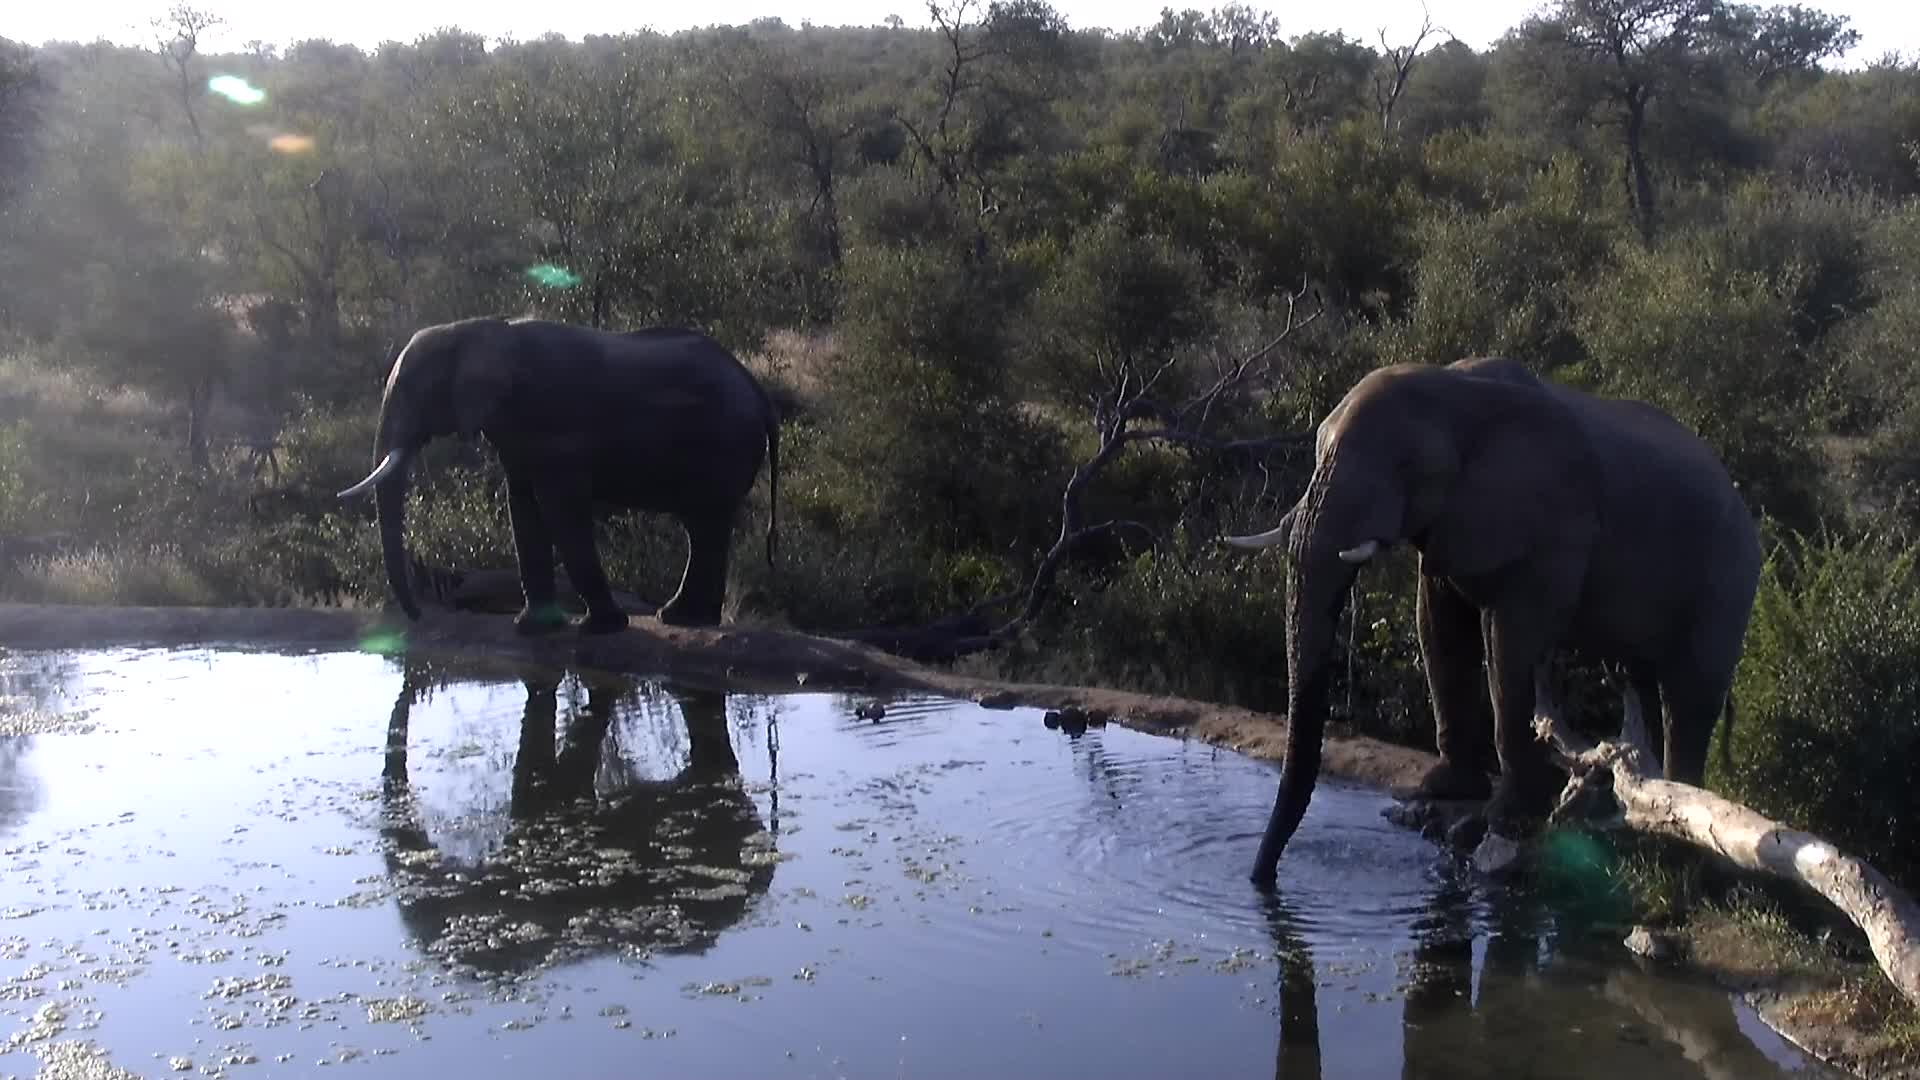 VIDEO:  Elephants having a quick drink before walking off